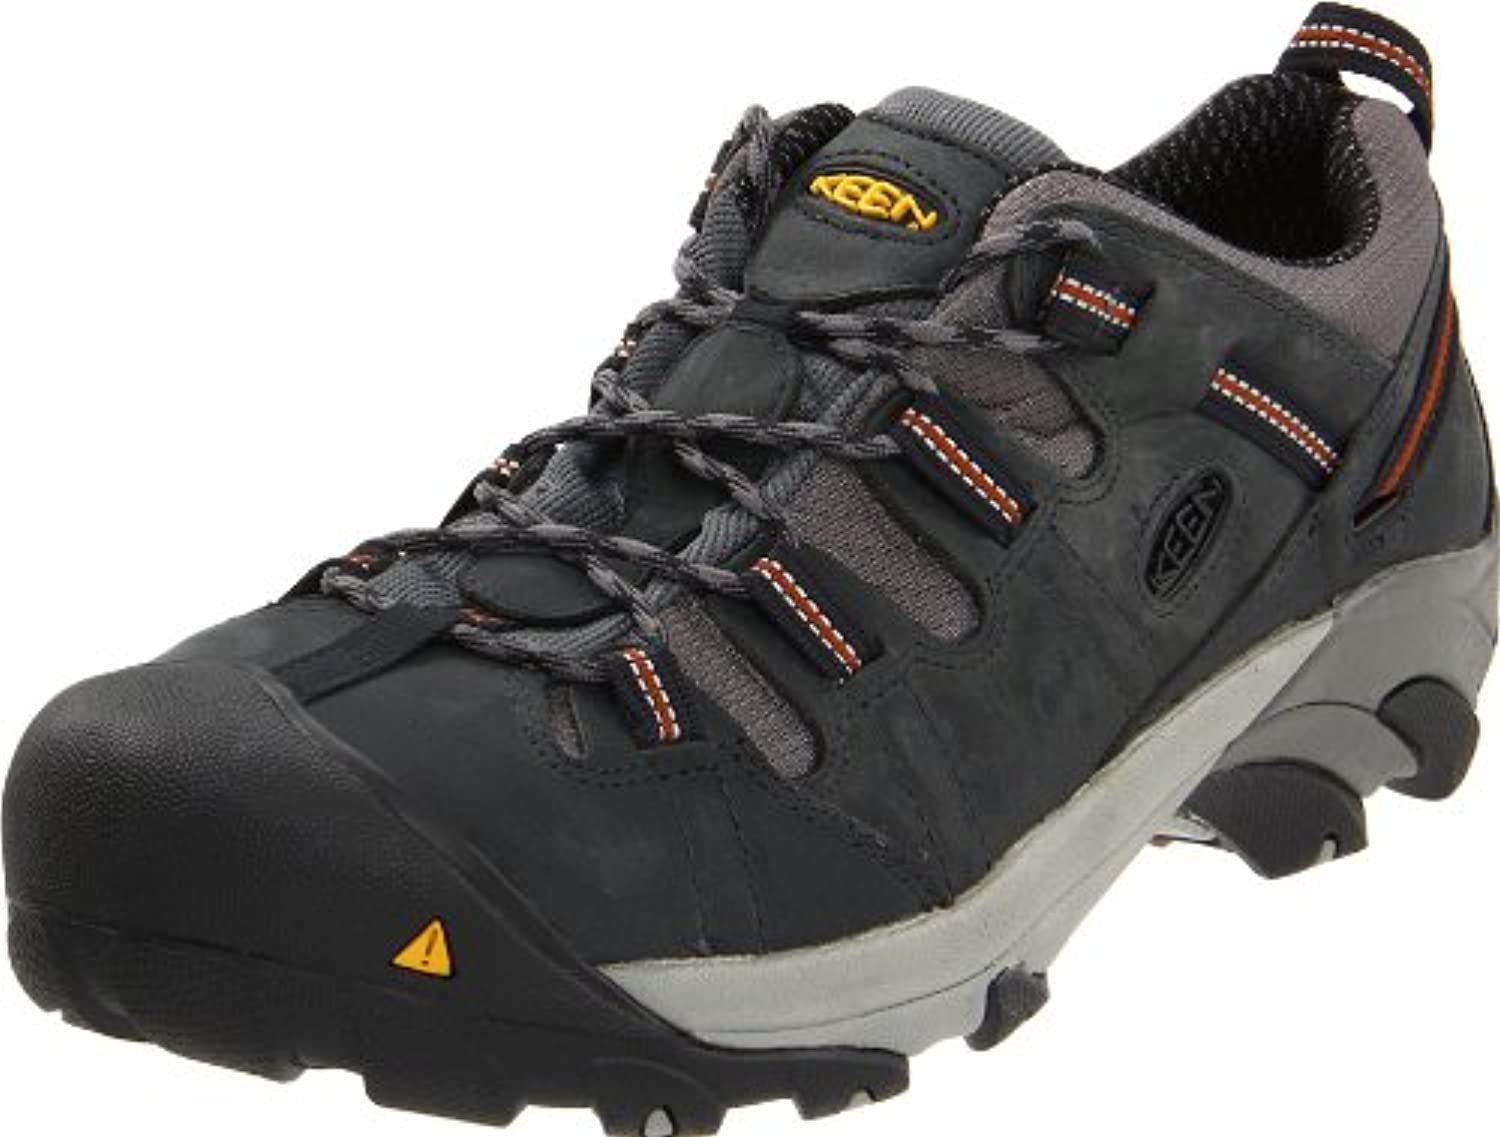 Keen Utility Men's Detroit Low Steel Toe Work Shoe